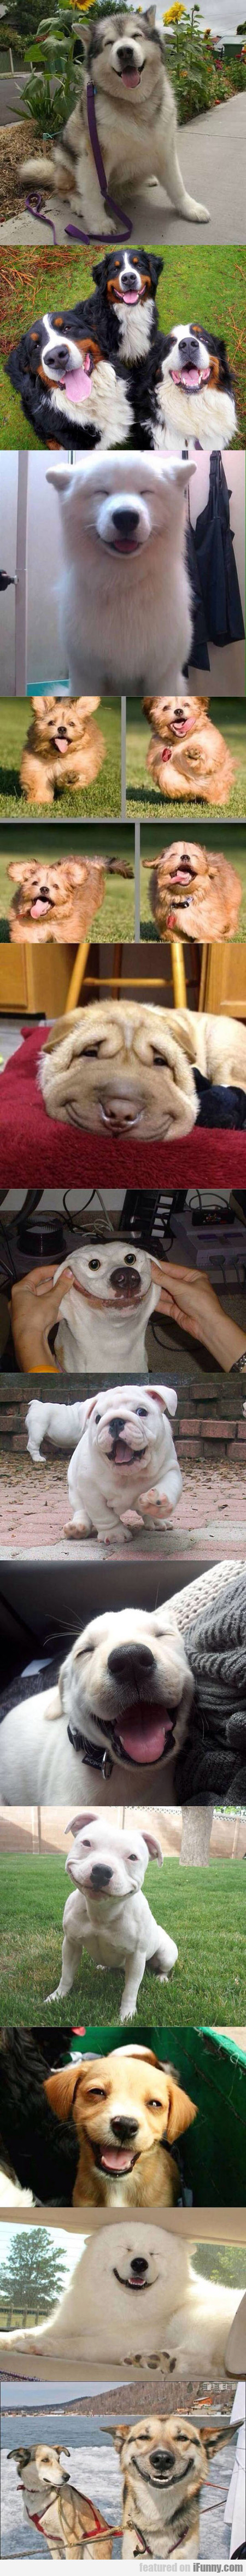 Best Smiling Dogs On The Internet